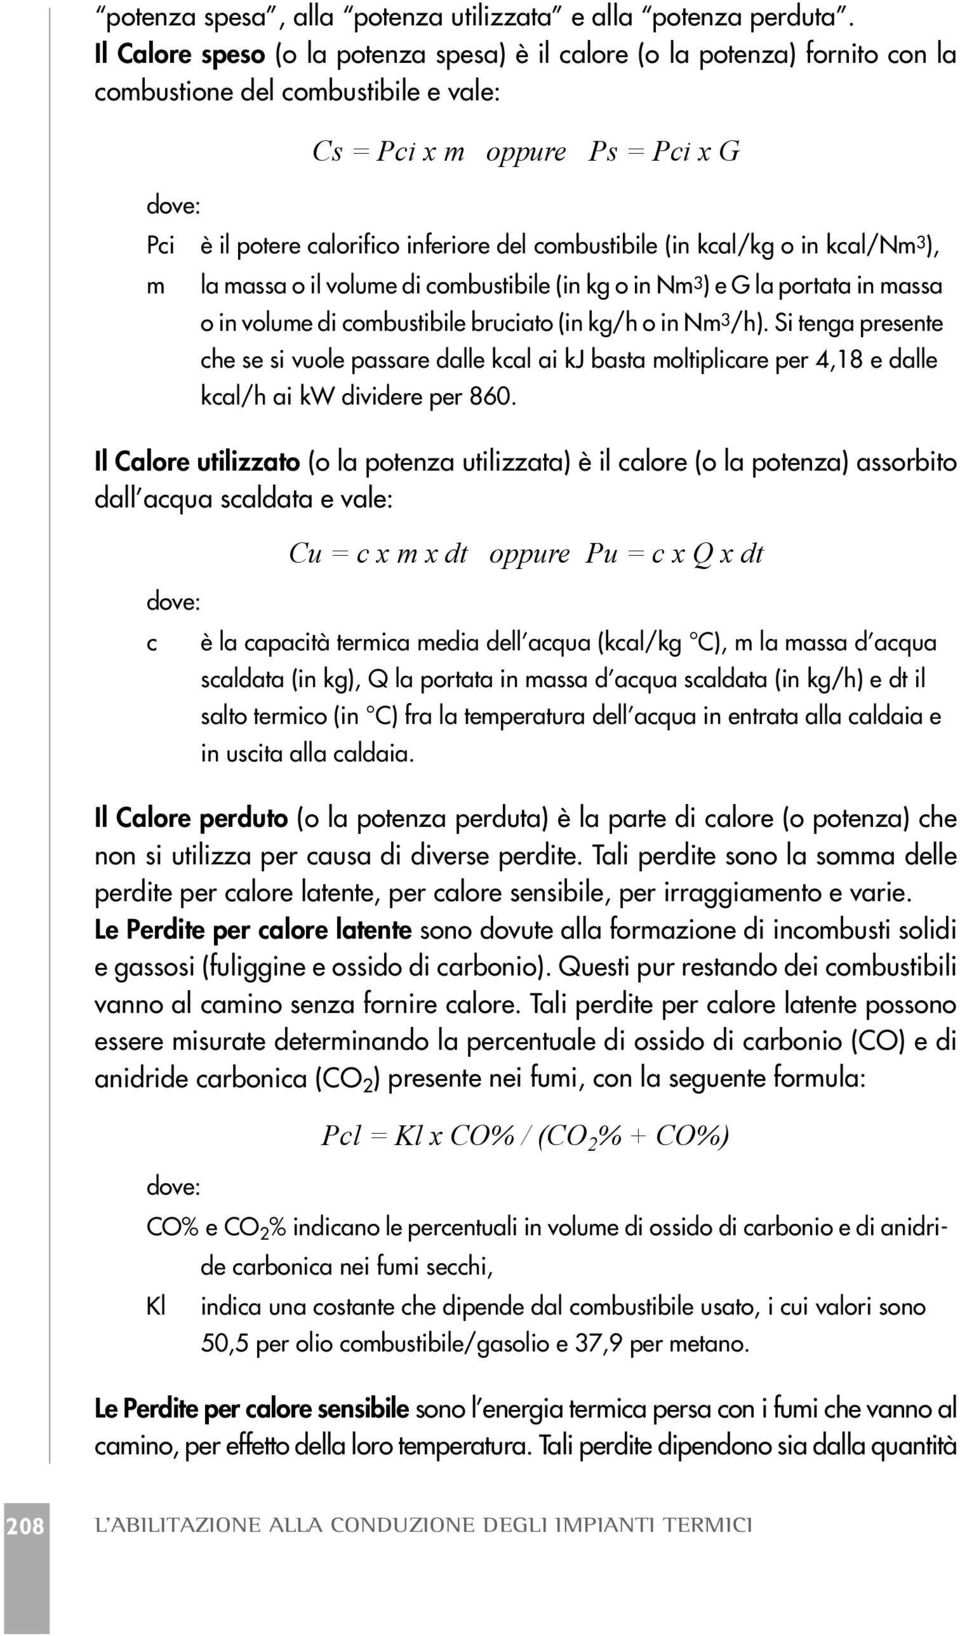 combustibile (in kcal/kg o in kcal/nm 3 ), m la massa o il volume di combustibile (in kg o in Nm 3 ) e G la portata in massa o in volume di combustibile bruciato (in kg/h o in Nm 3 /h).